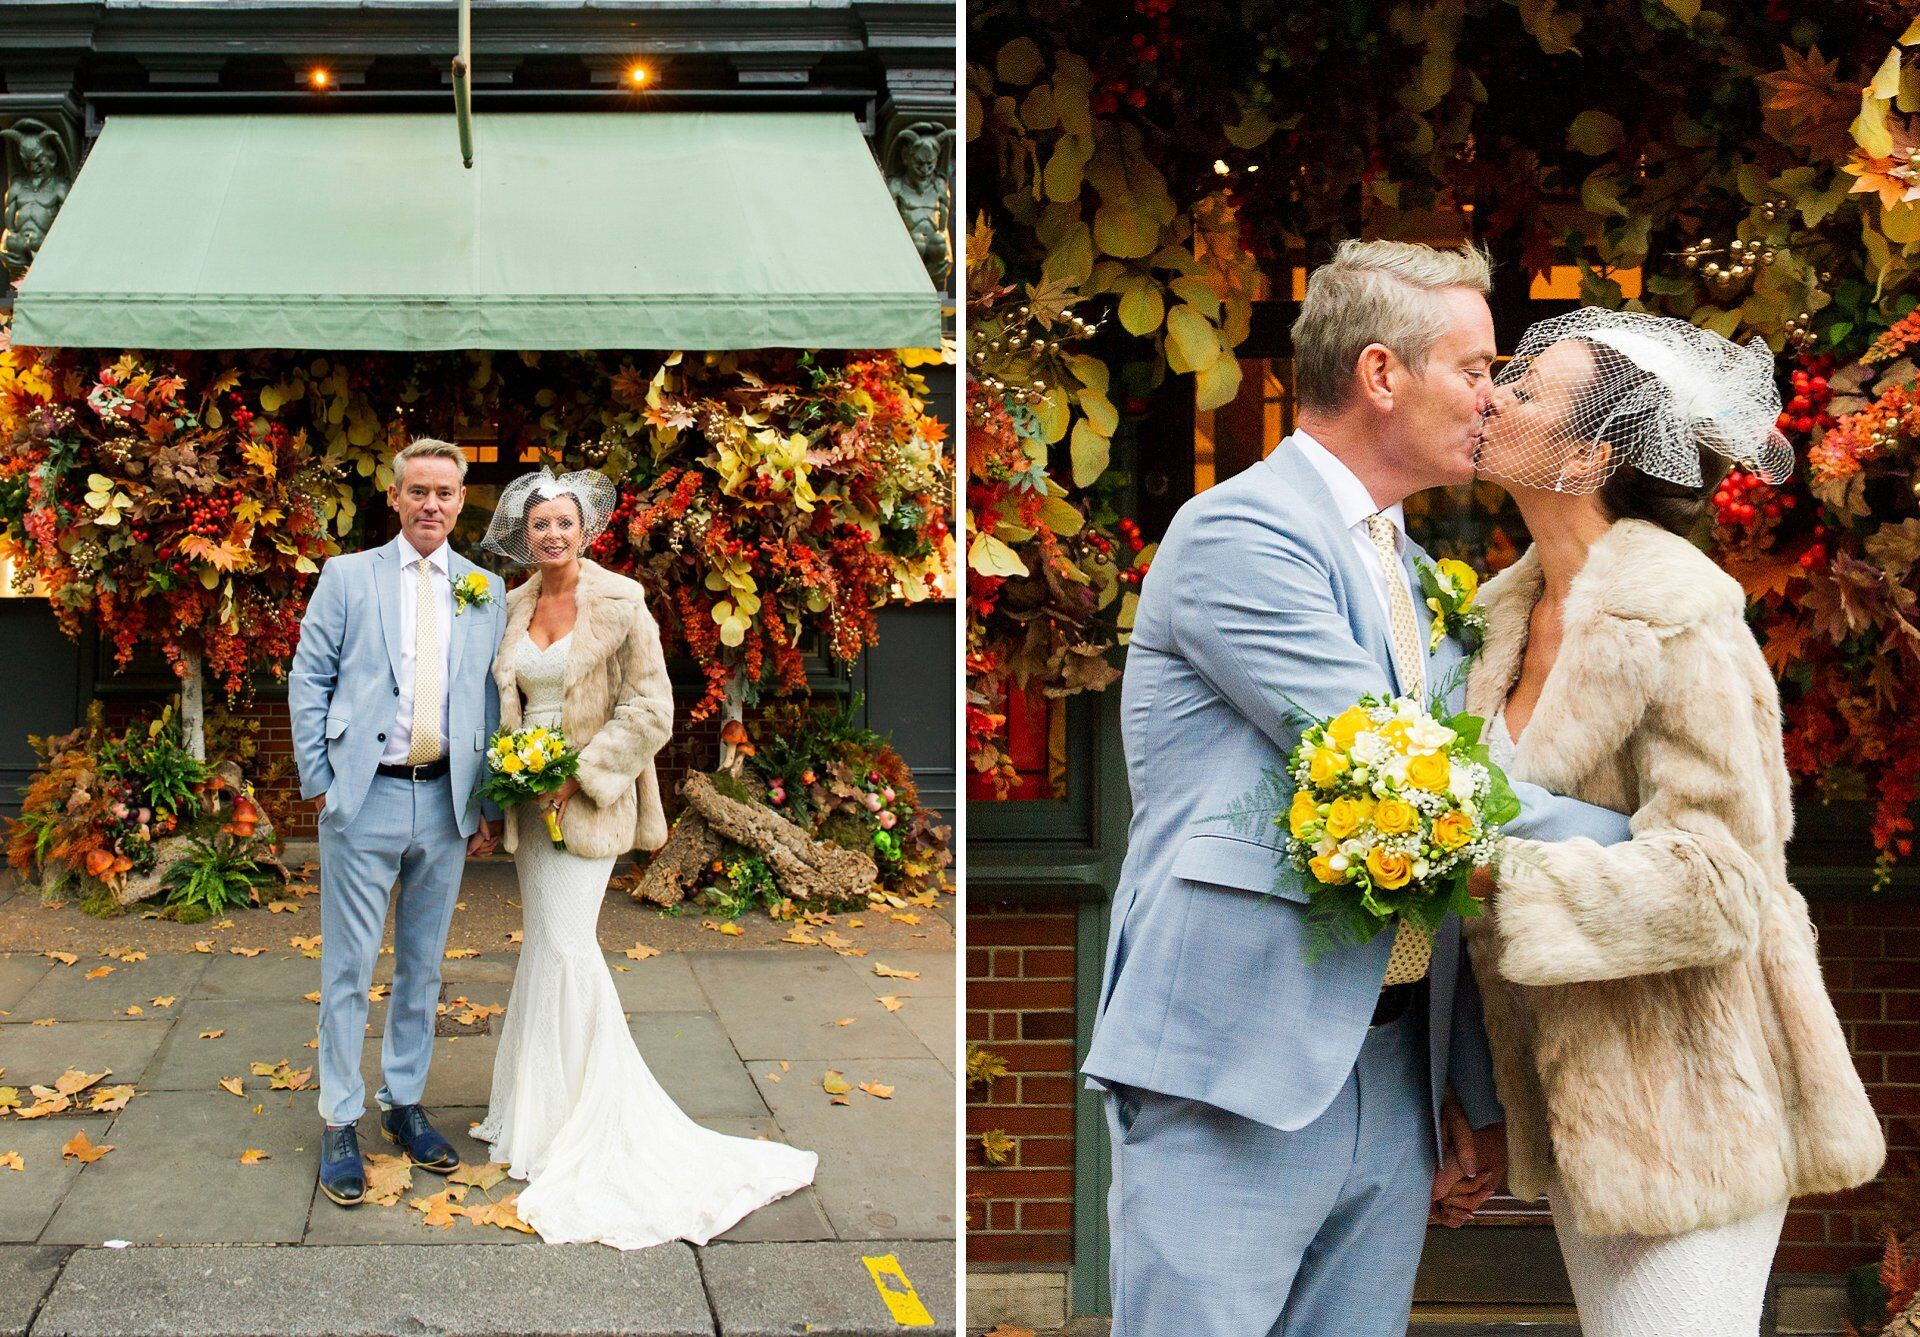 Ivy Chelsea Garden wedding photographer stunning full-length fitted lace dress and fur coat with bridcage veil and groom in cotton pale blue suit and yellow and cream flowers